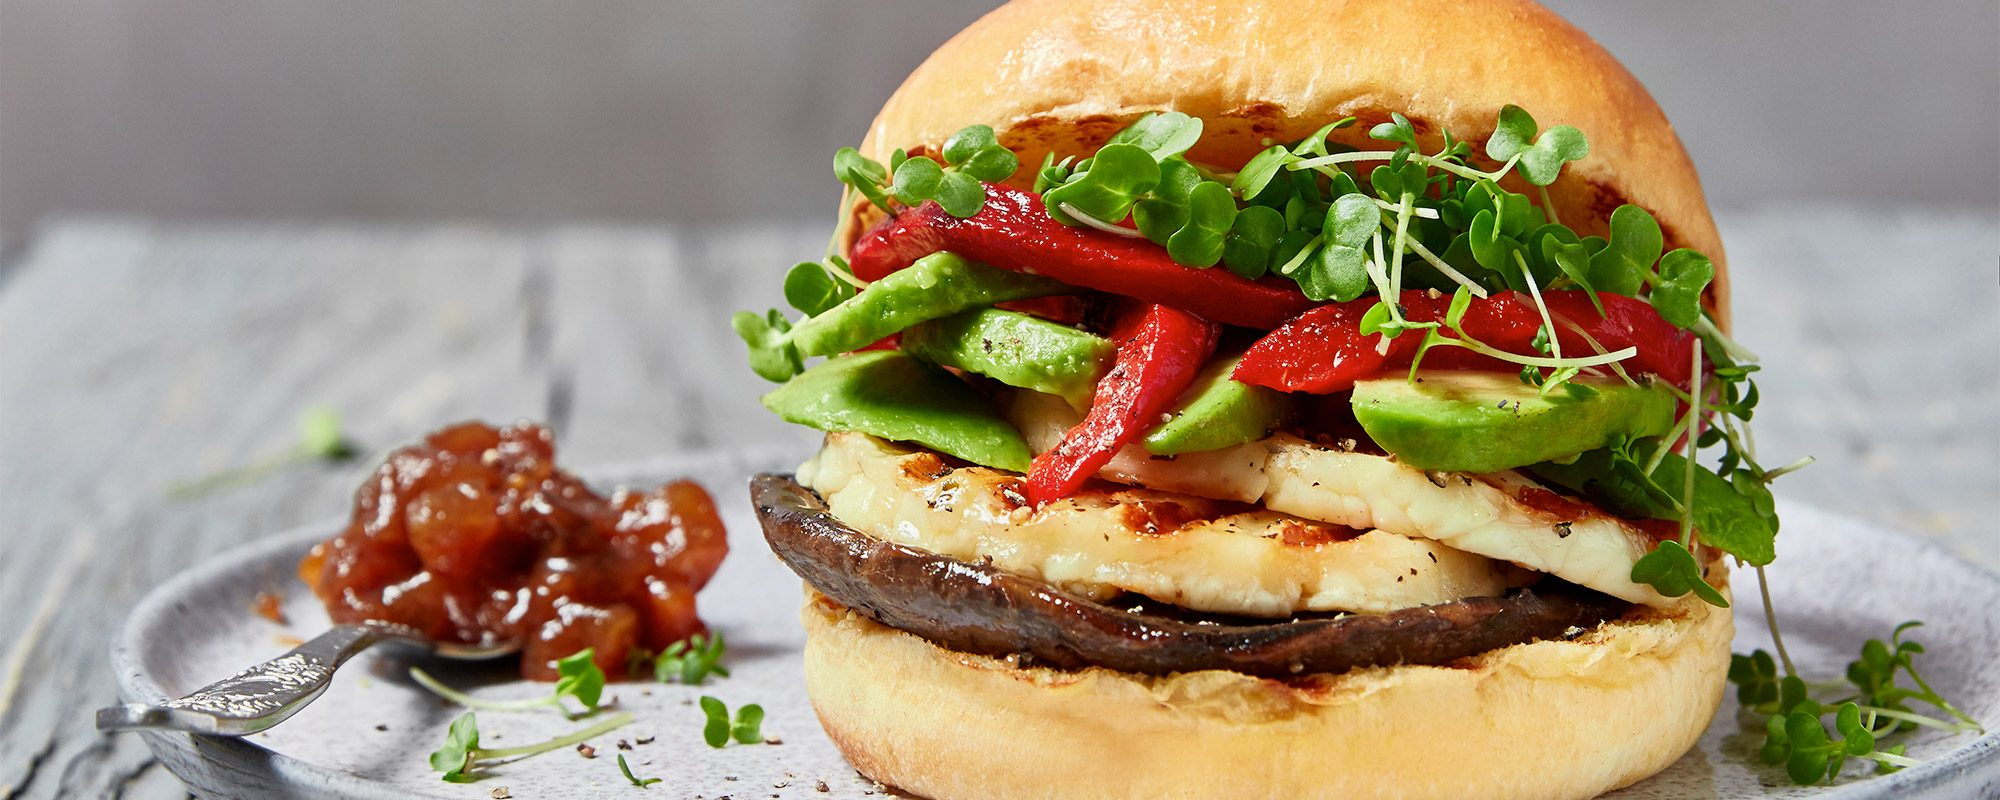 Halloumi and cress burger